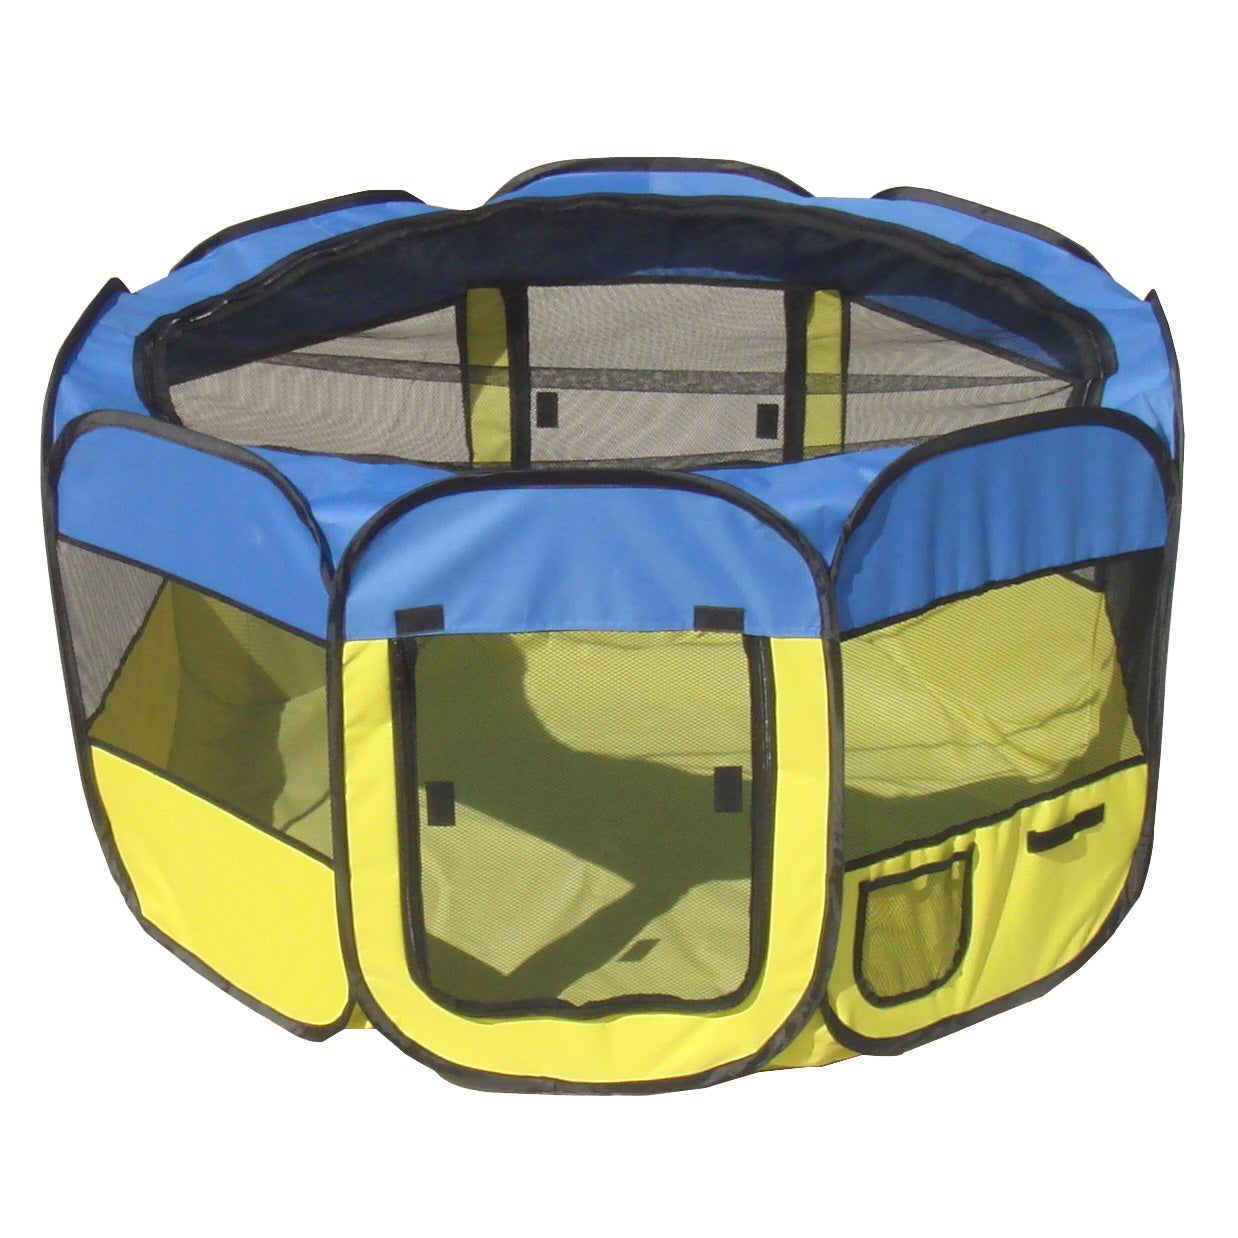 Petlife Collapsible Travel Pet Play Pen (Blue/Yellow - Me...